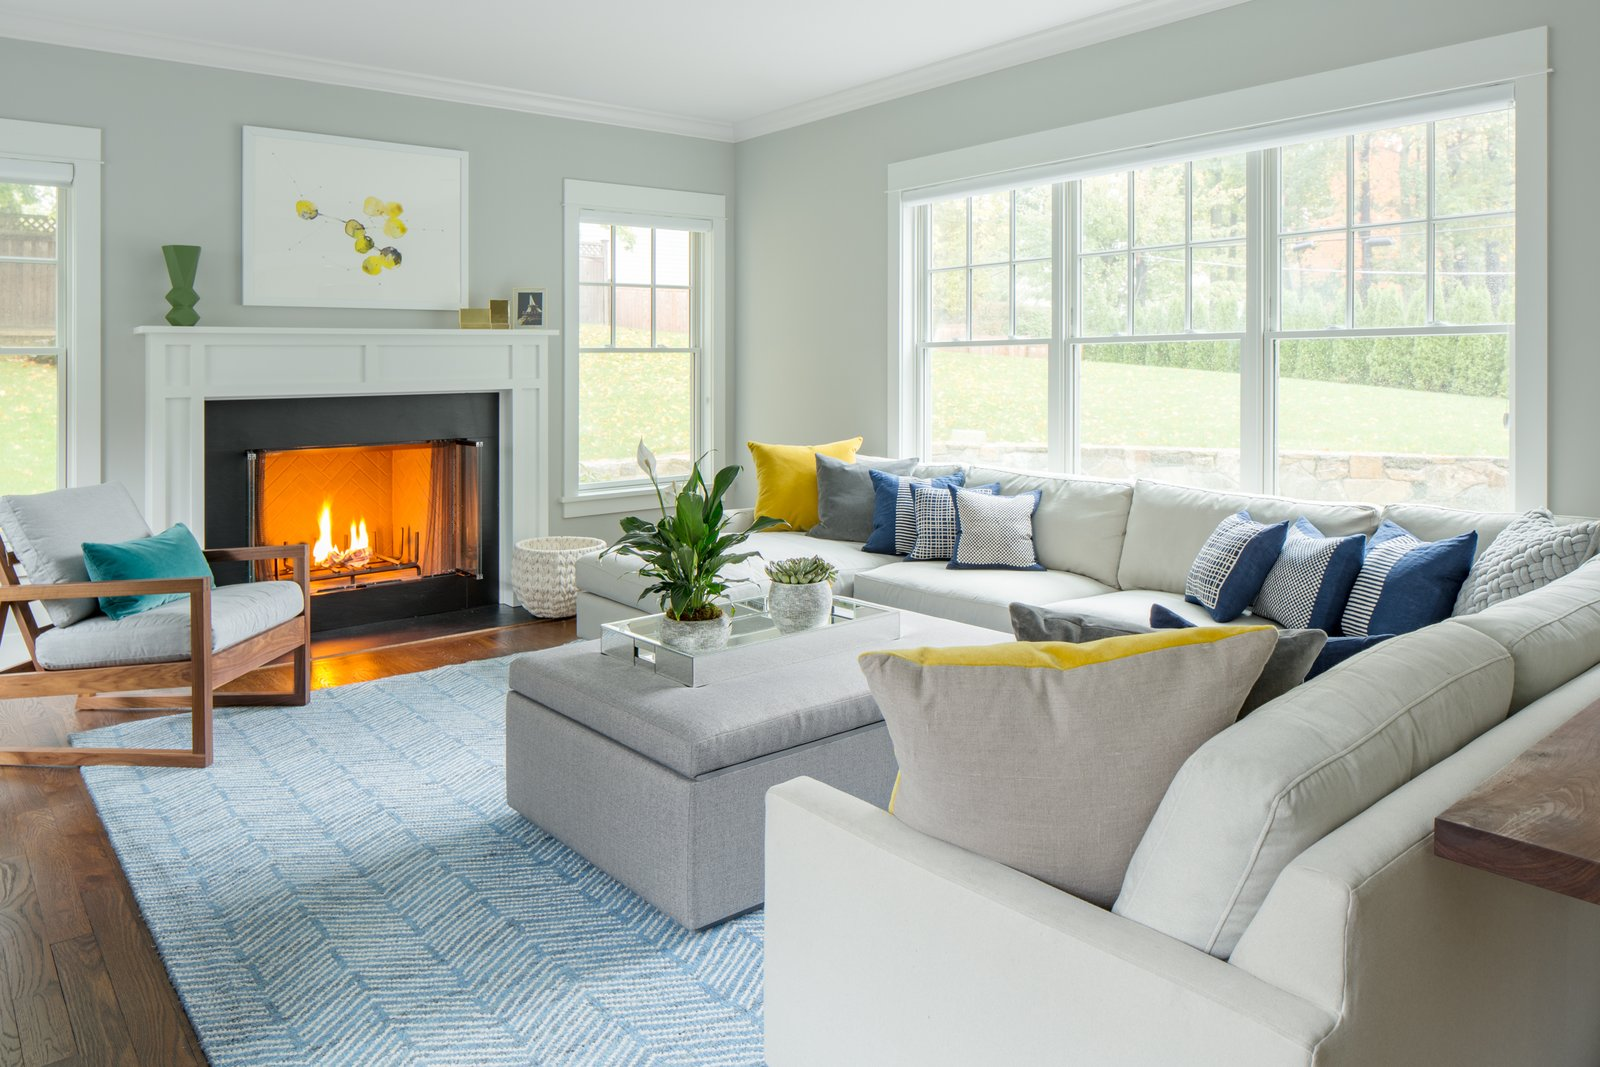 Living Room, Ottomans, Sofa, Chair, Standard Layout Fireplace, and Medium Hardwood Floor Colorful accent pillows and decorative geometric objects were added throughout the home, to further distinguish each room, and to offset the tasteful, neutral palette.   Contemporary Westchester Home